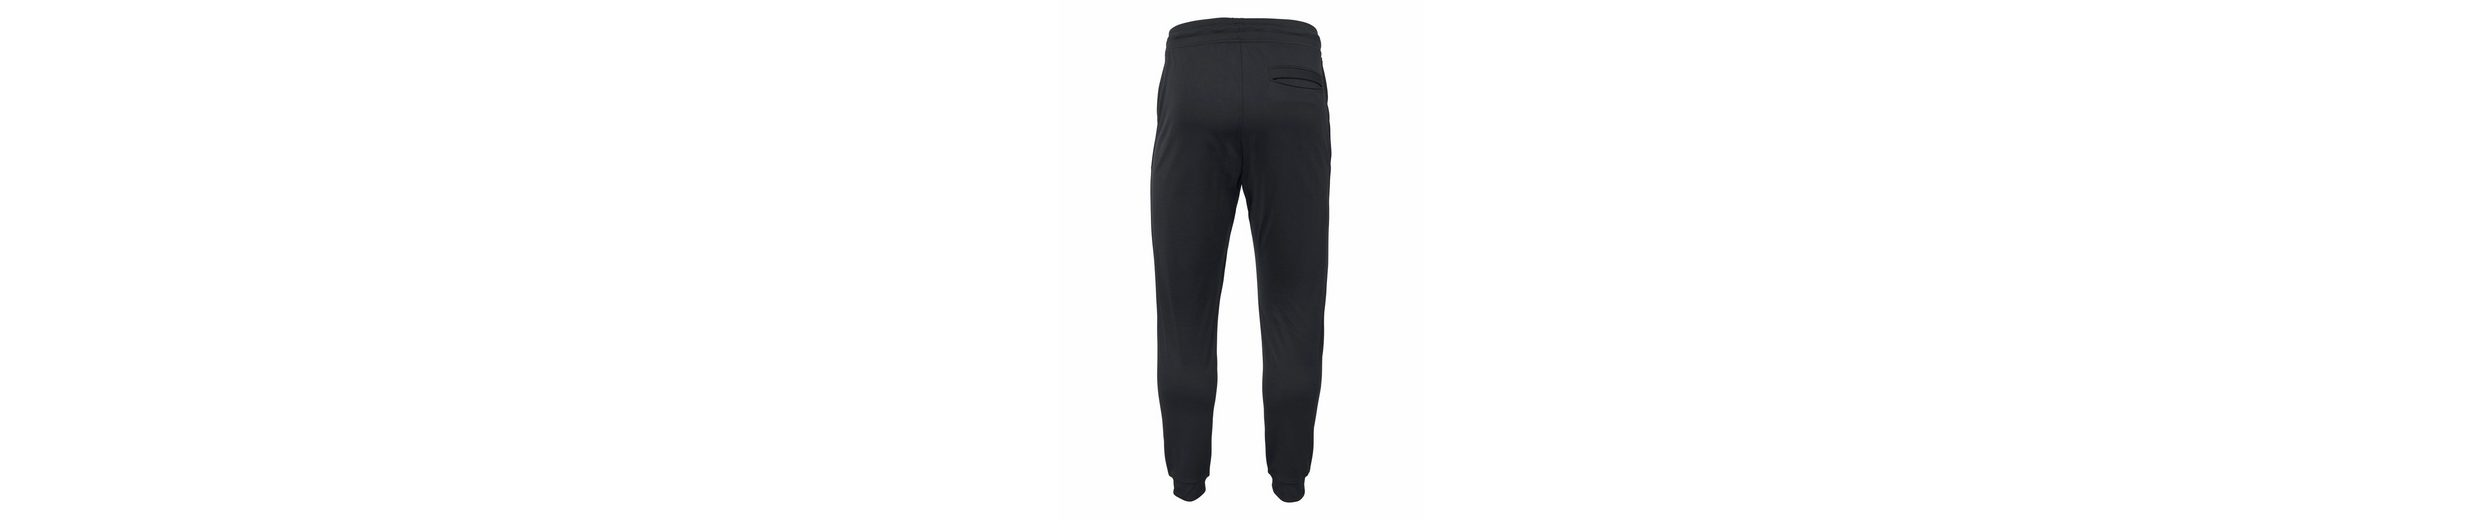 Jogginghose Under Armour Under Jogginghose Armour UB8Pw68x